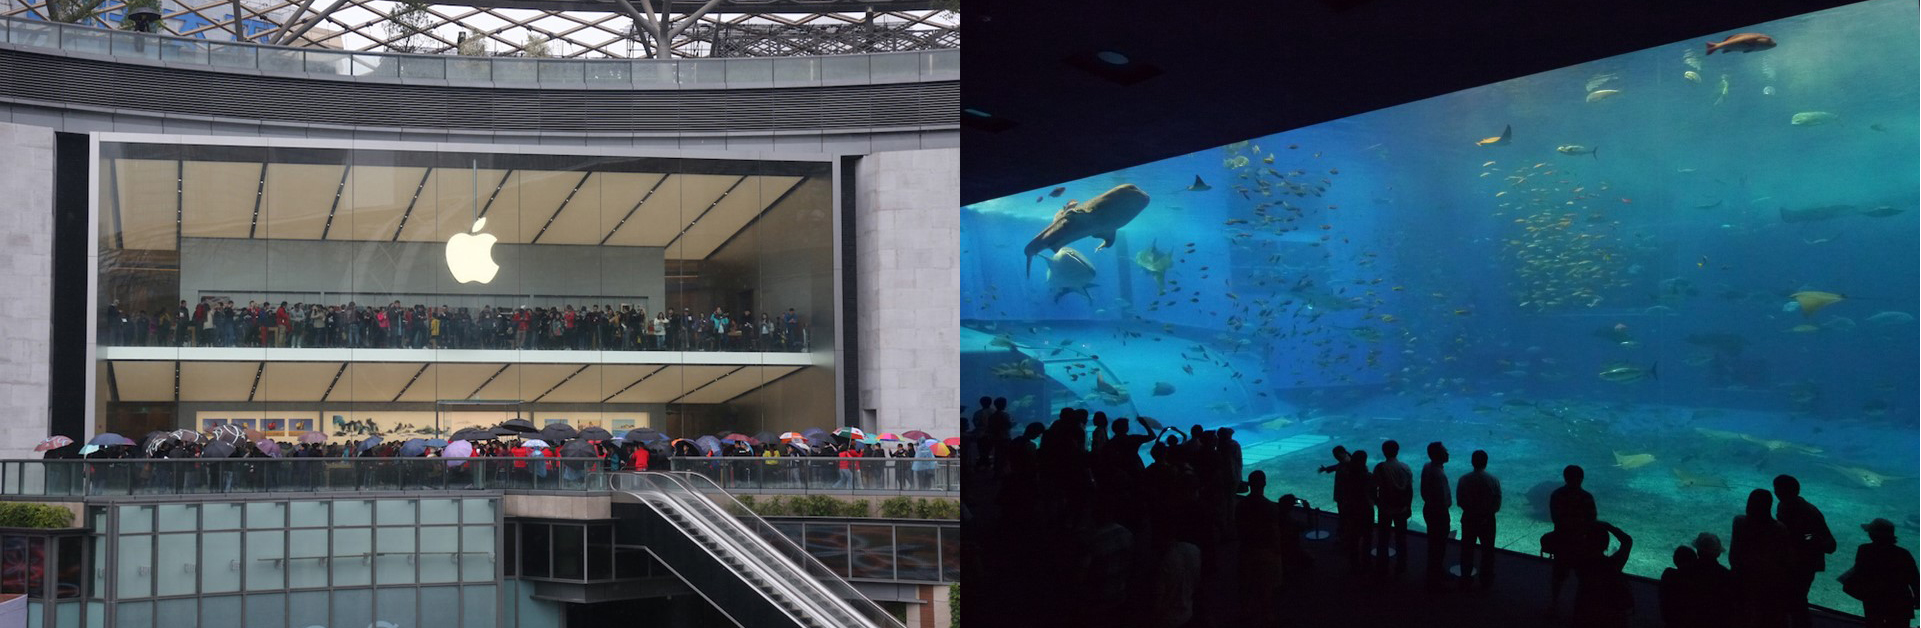 Fig: Apple-Store-Westlake-Hangzhou-China-by-Foster-and-Partners – Okinawa Churaumi Aquarium Japan